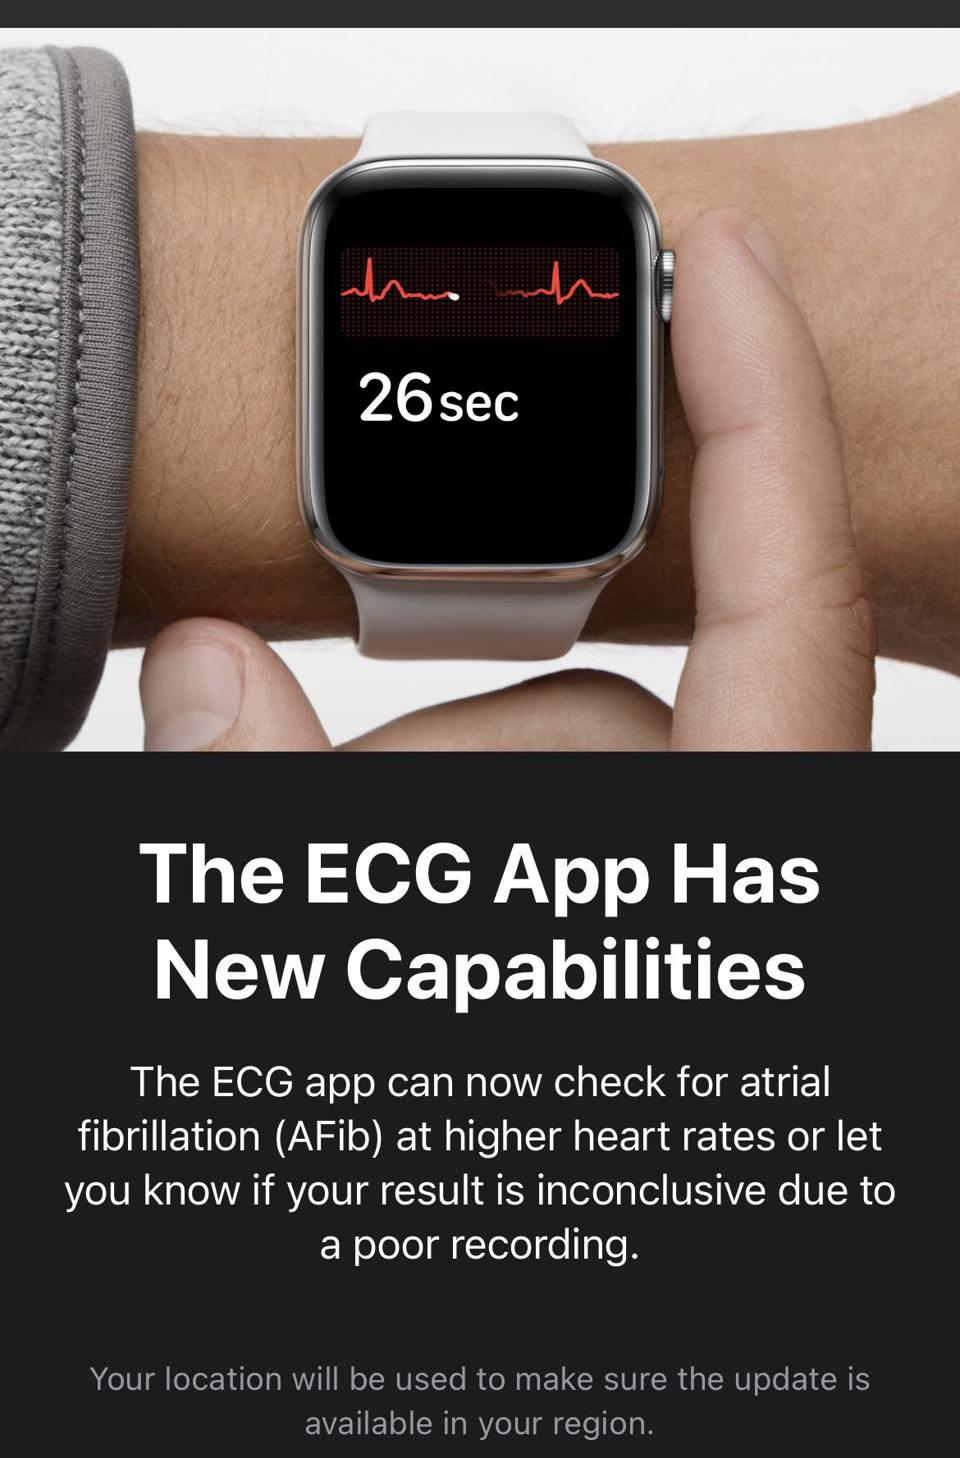 Look out for a notification of the ECG app upgrade.